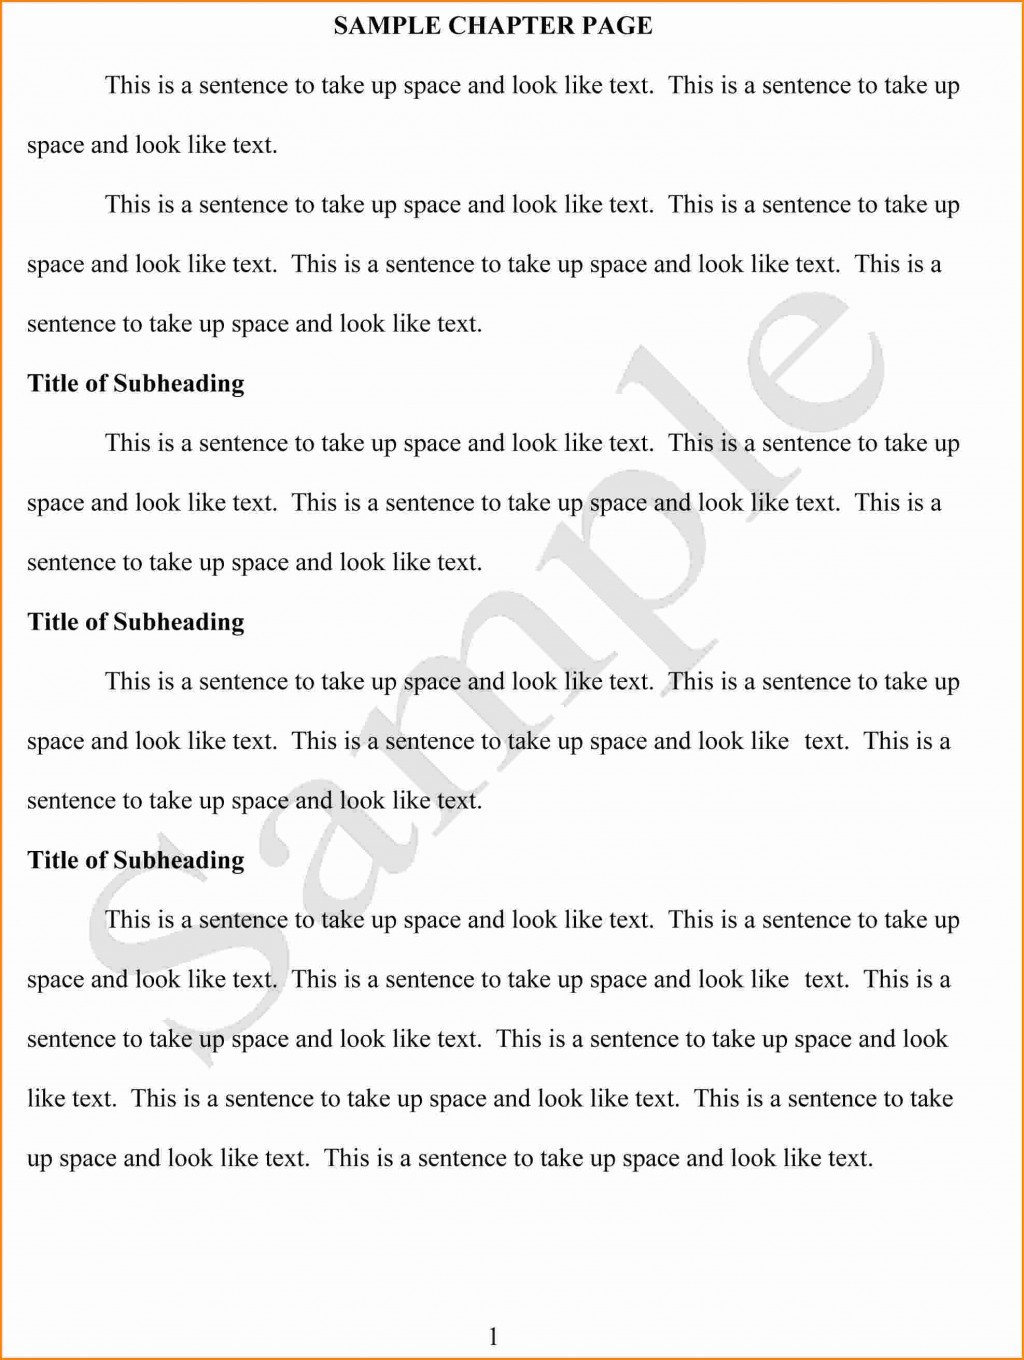 003 Essay Example Thesis Statement Examples For Essays Psychology Sample Stunning Explanatory Writing Prompts High School Fsa Rubric Expository College Large